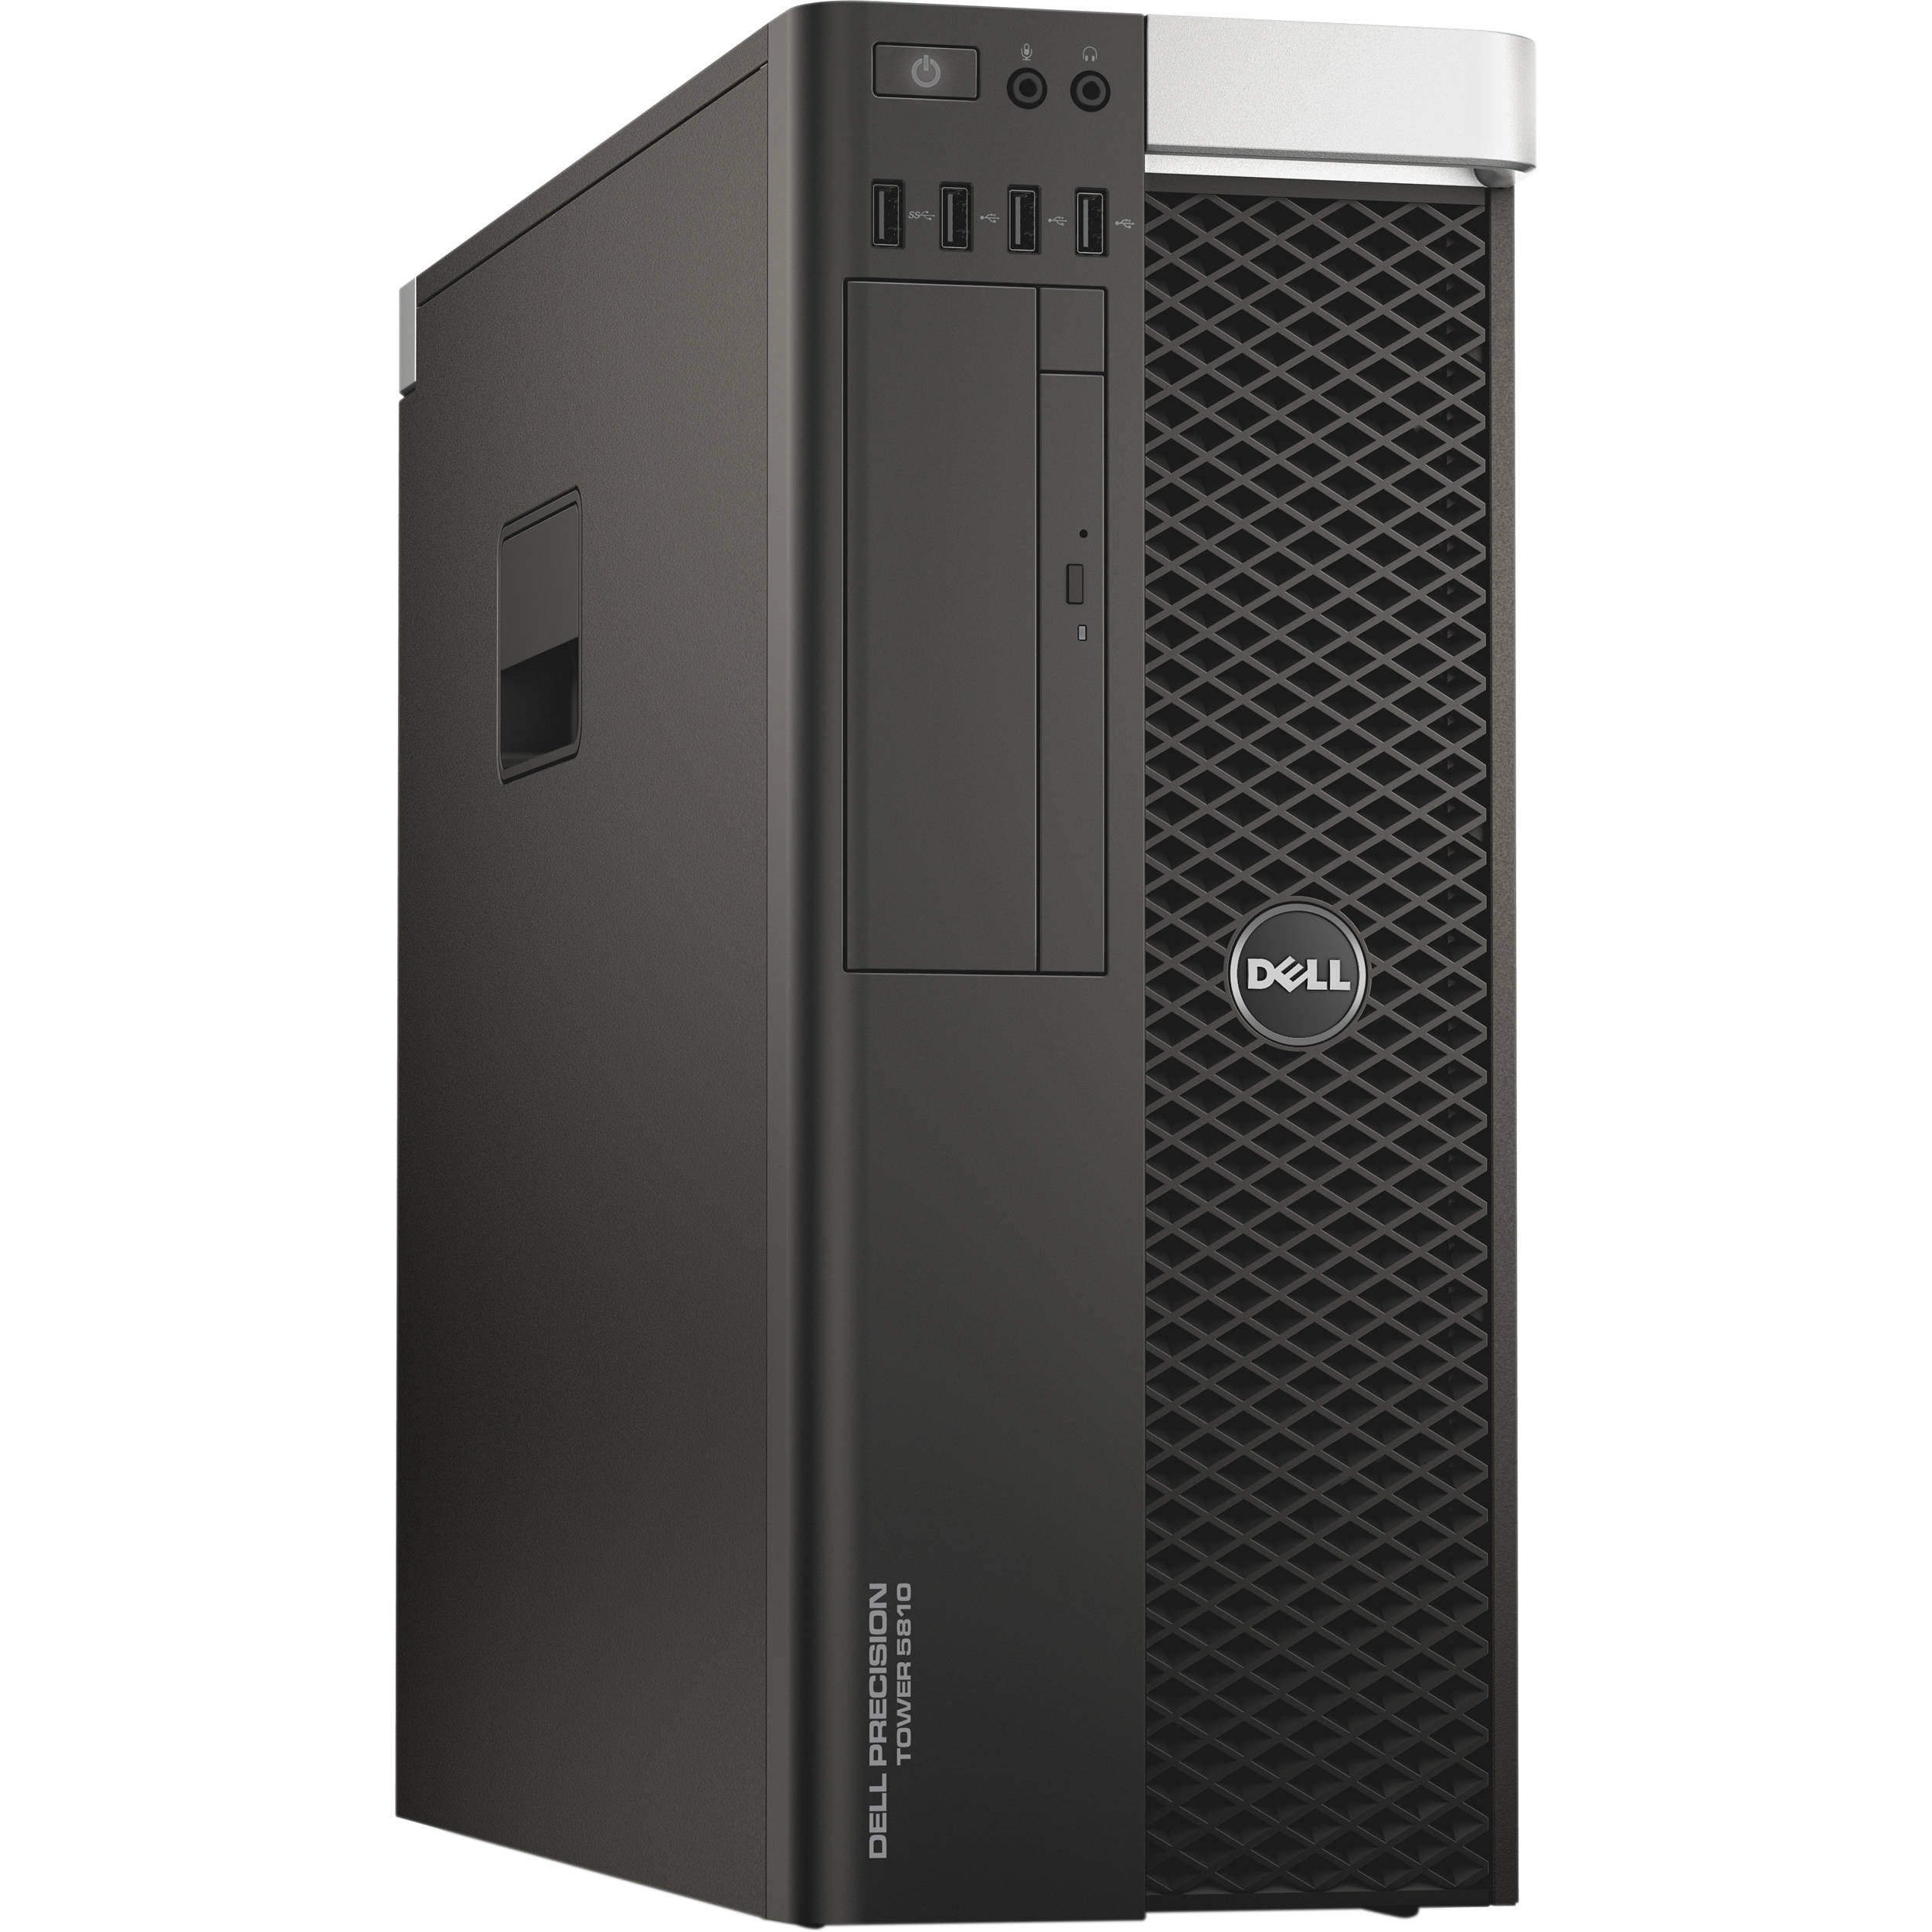 "DELL PRECISION T5810 INTEL XEON E5-1620 3.60 GHZ 16GB RAM 480GB SSD "" screen DVD-RW Windows 10 Professional (64 bit)"